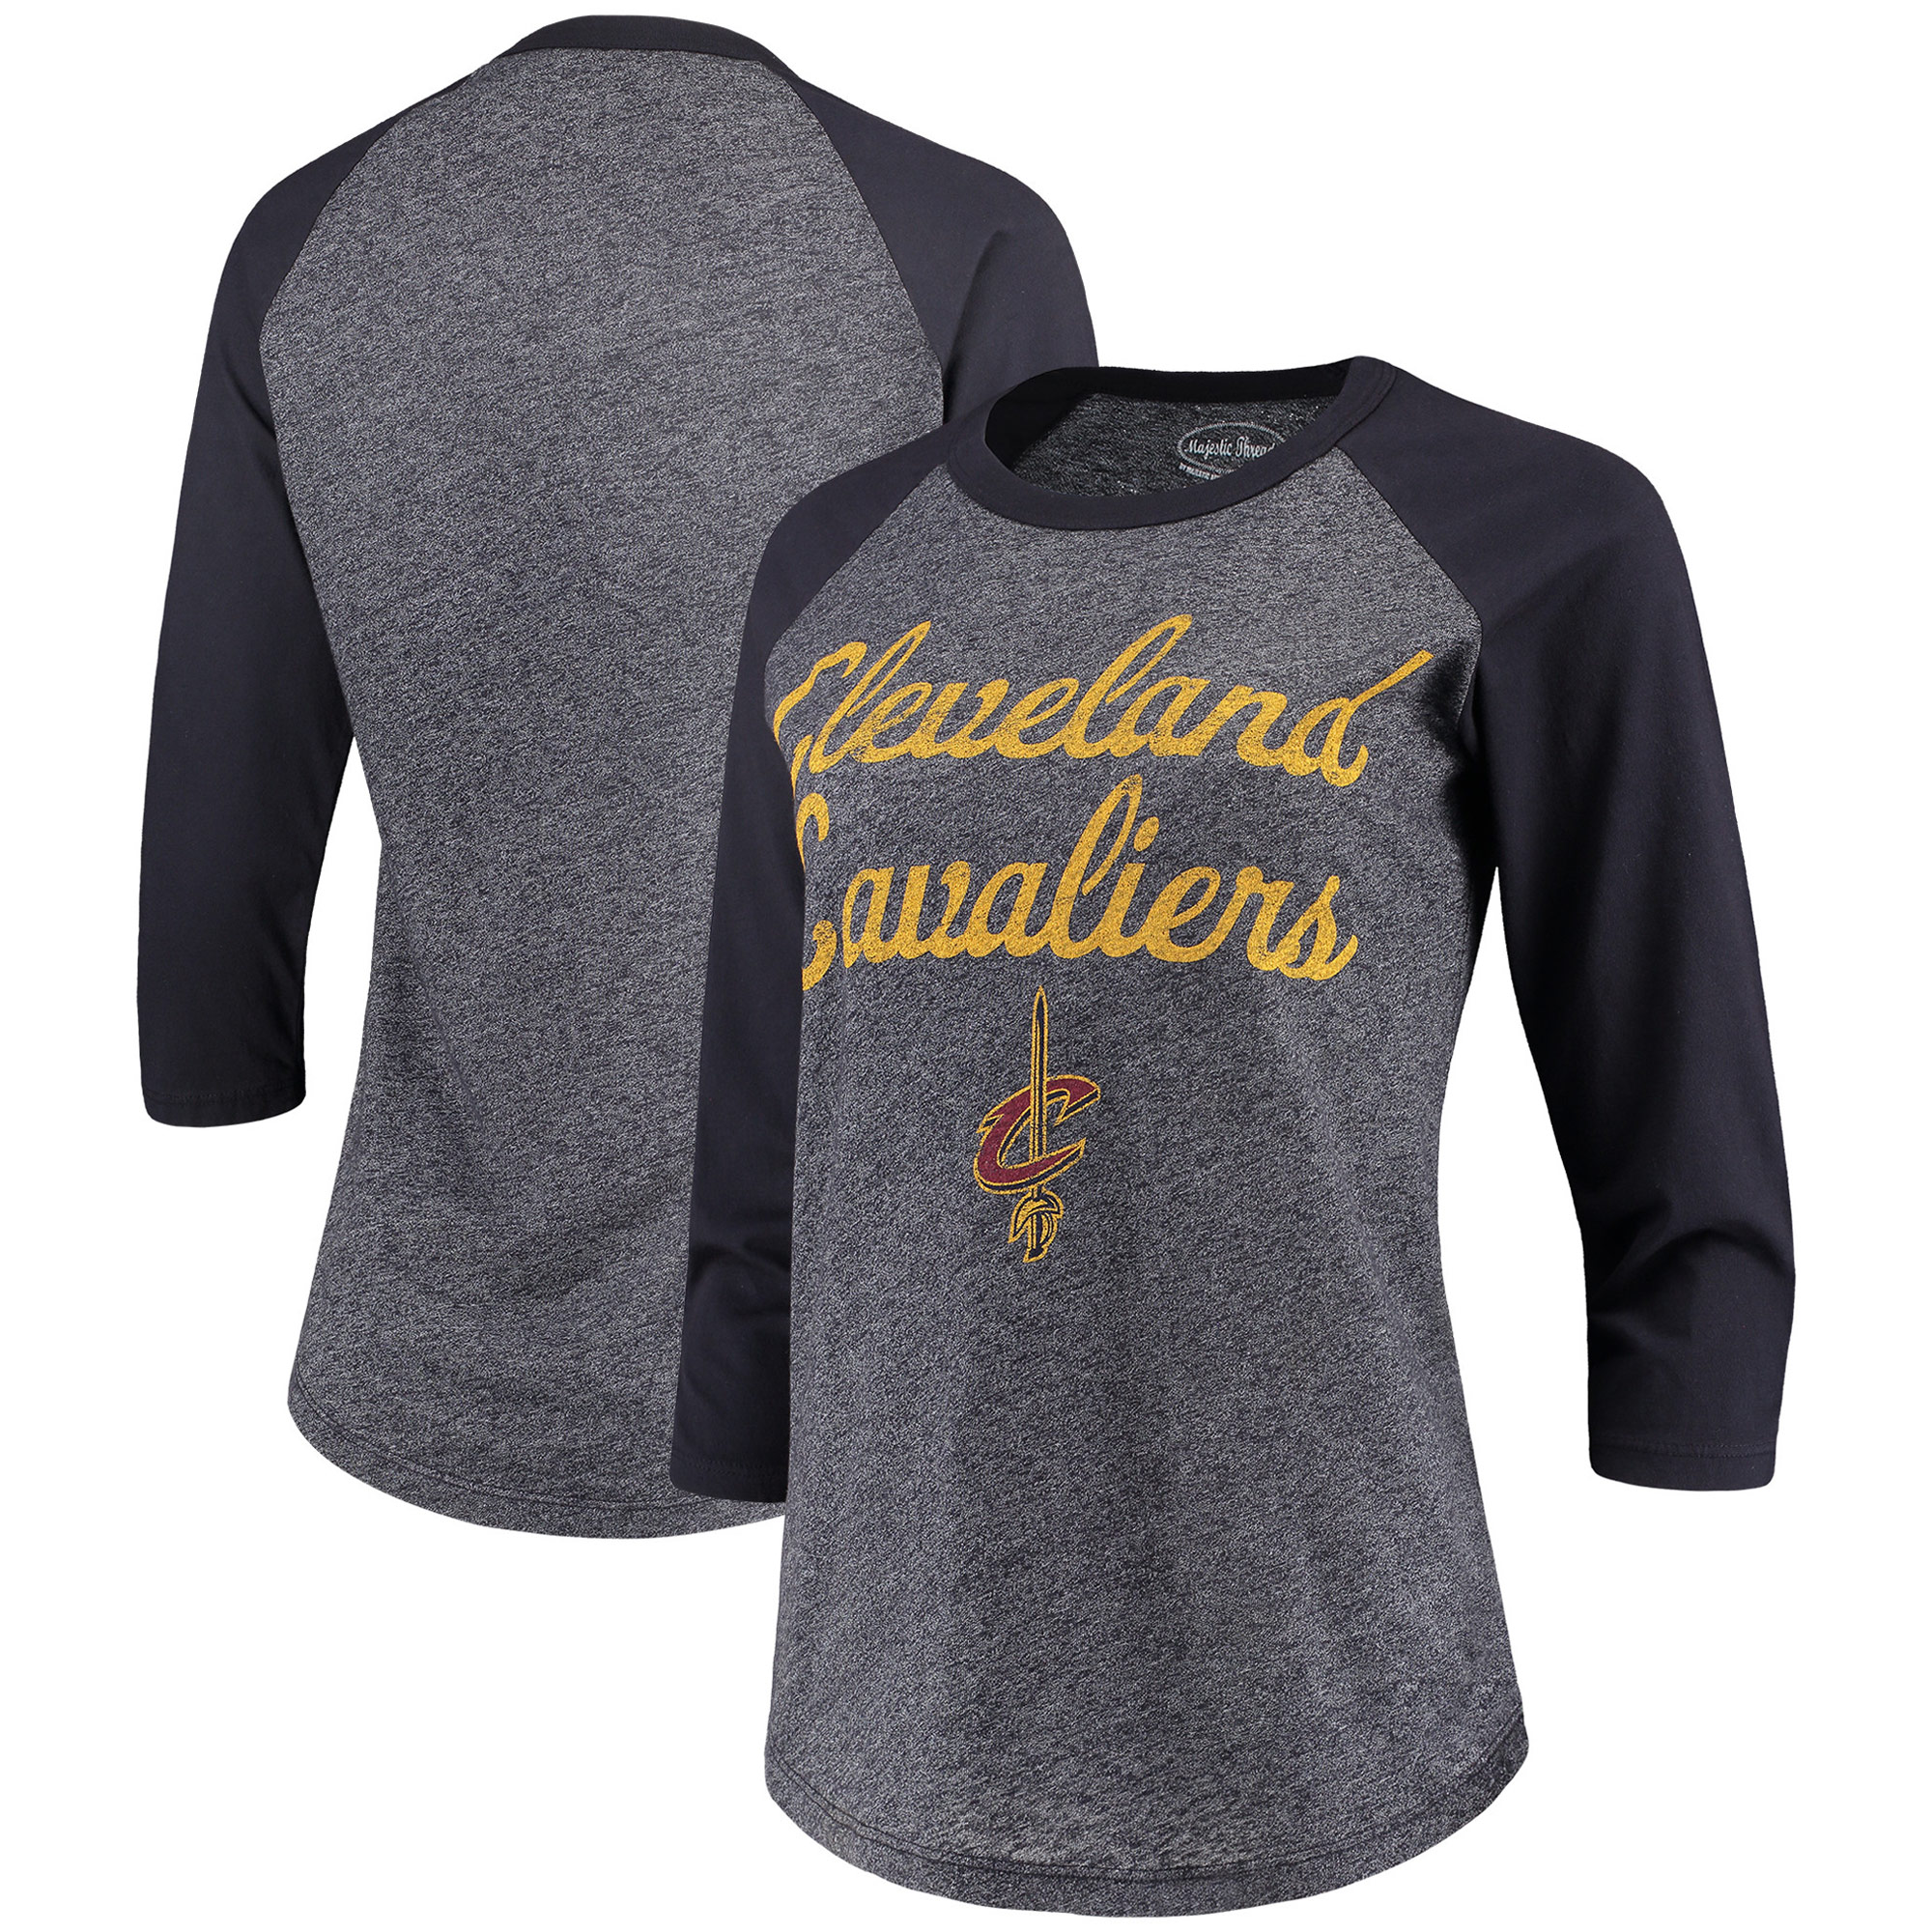 Cleveland Cavaliers Majestic Threads Women's Double Dribble Raglan Tri-Blend 3/4-Sleeve T-Shirt - Heathered Navy/Navy